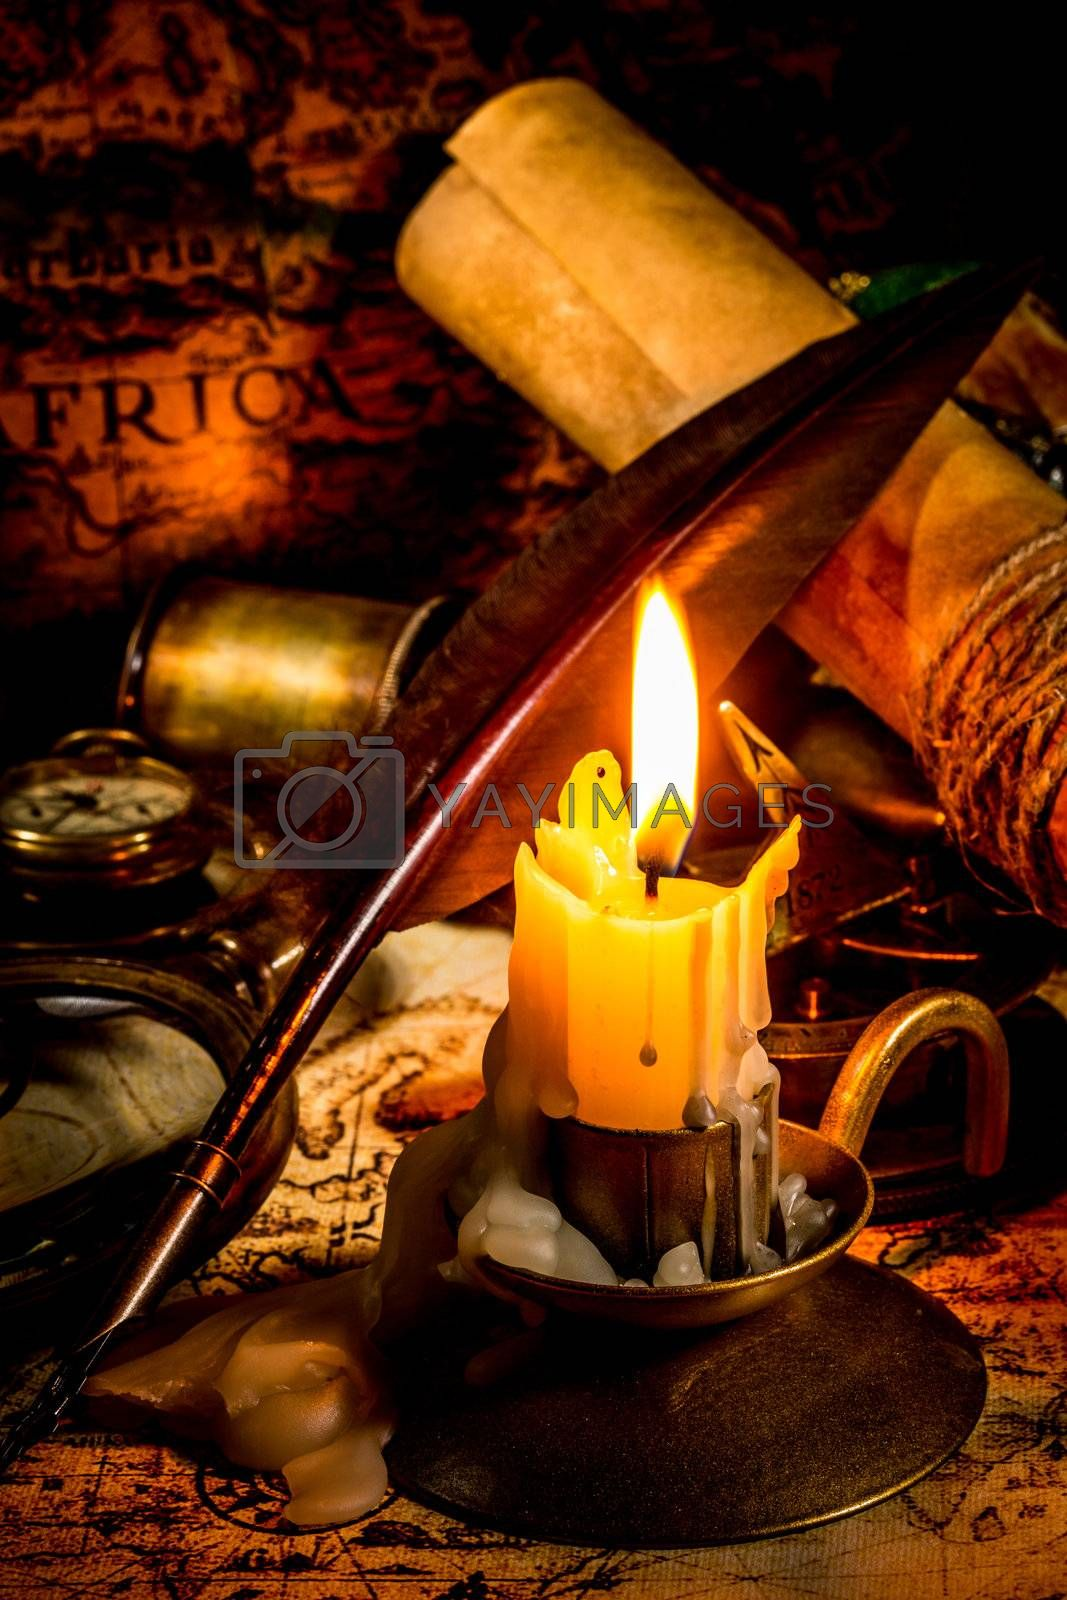 Vintage compass, magnifying glass, quill pen, spyglass lie on an old ancient map with a lit candle